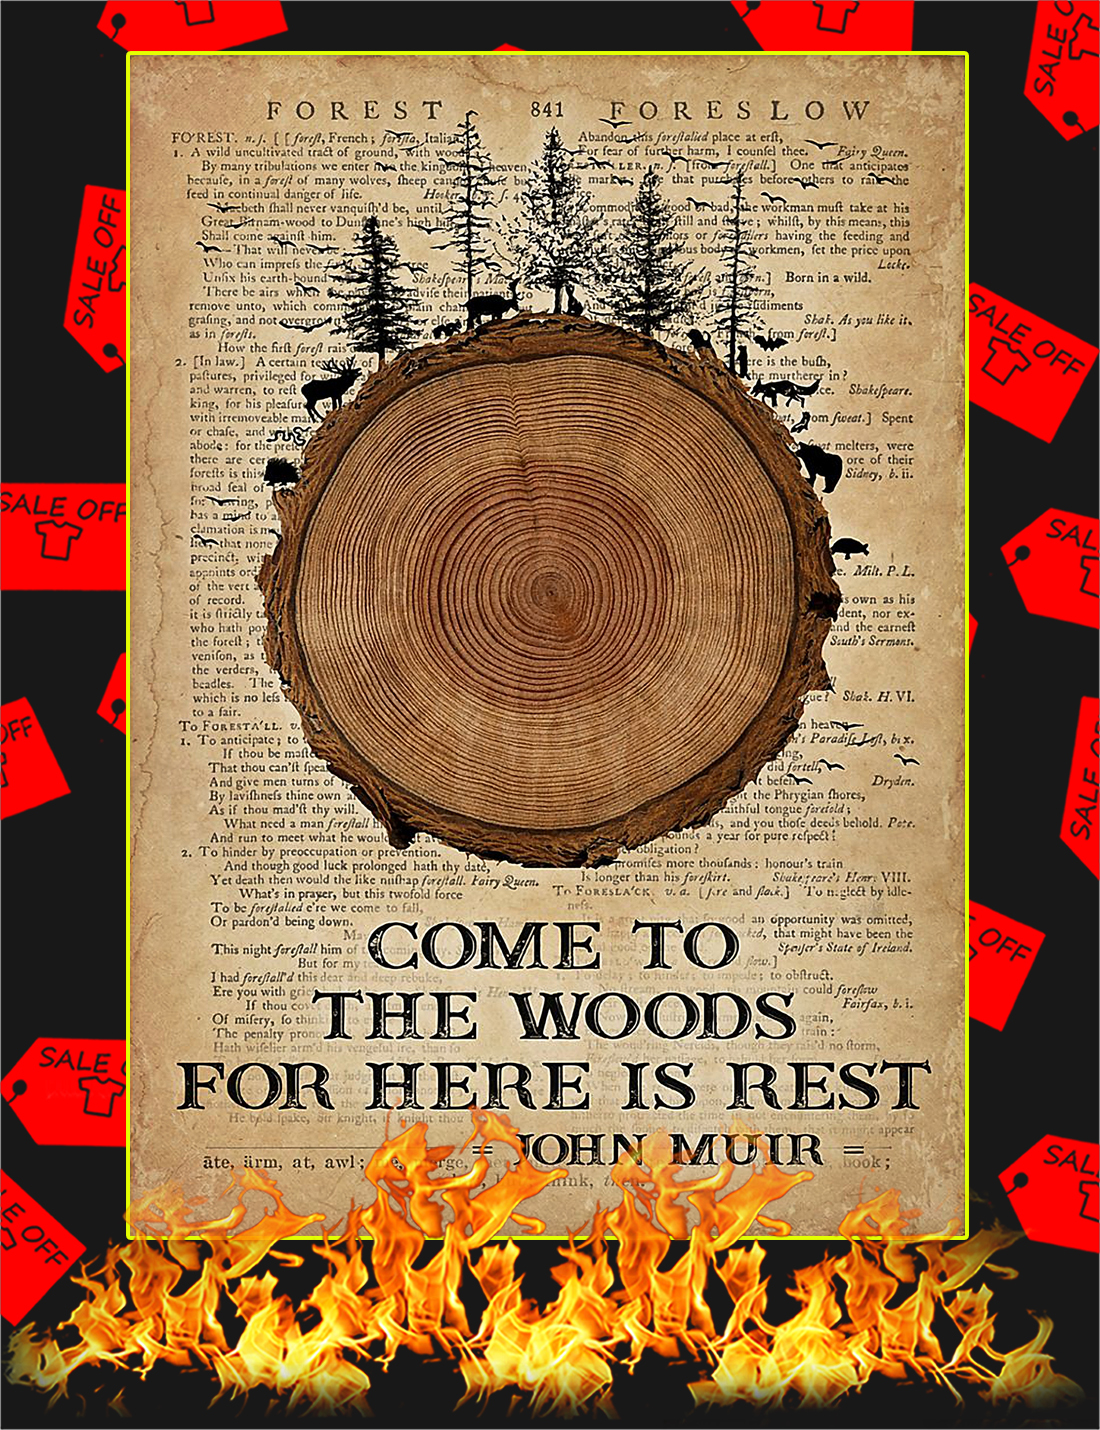 Come to the woods for here is rest poster - A4